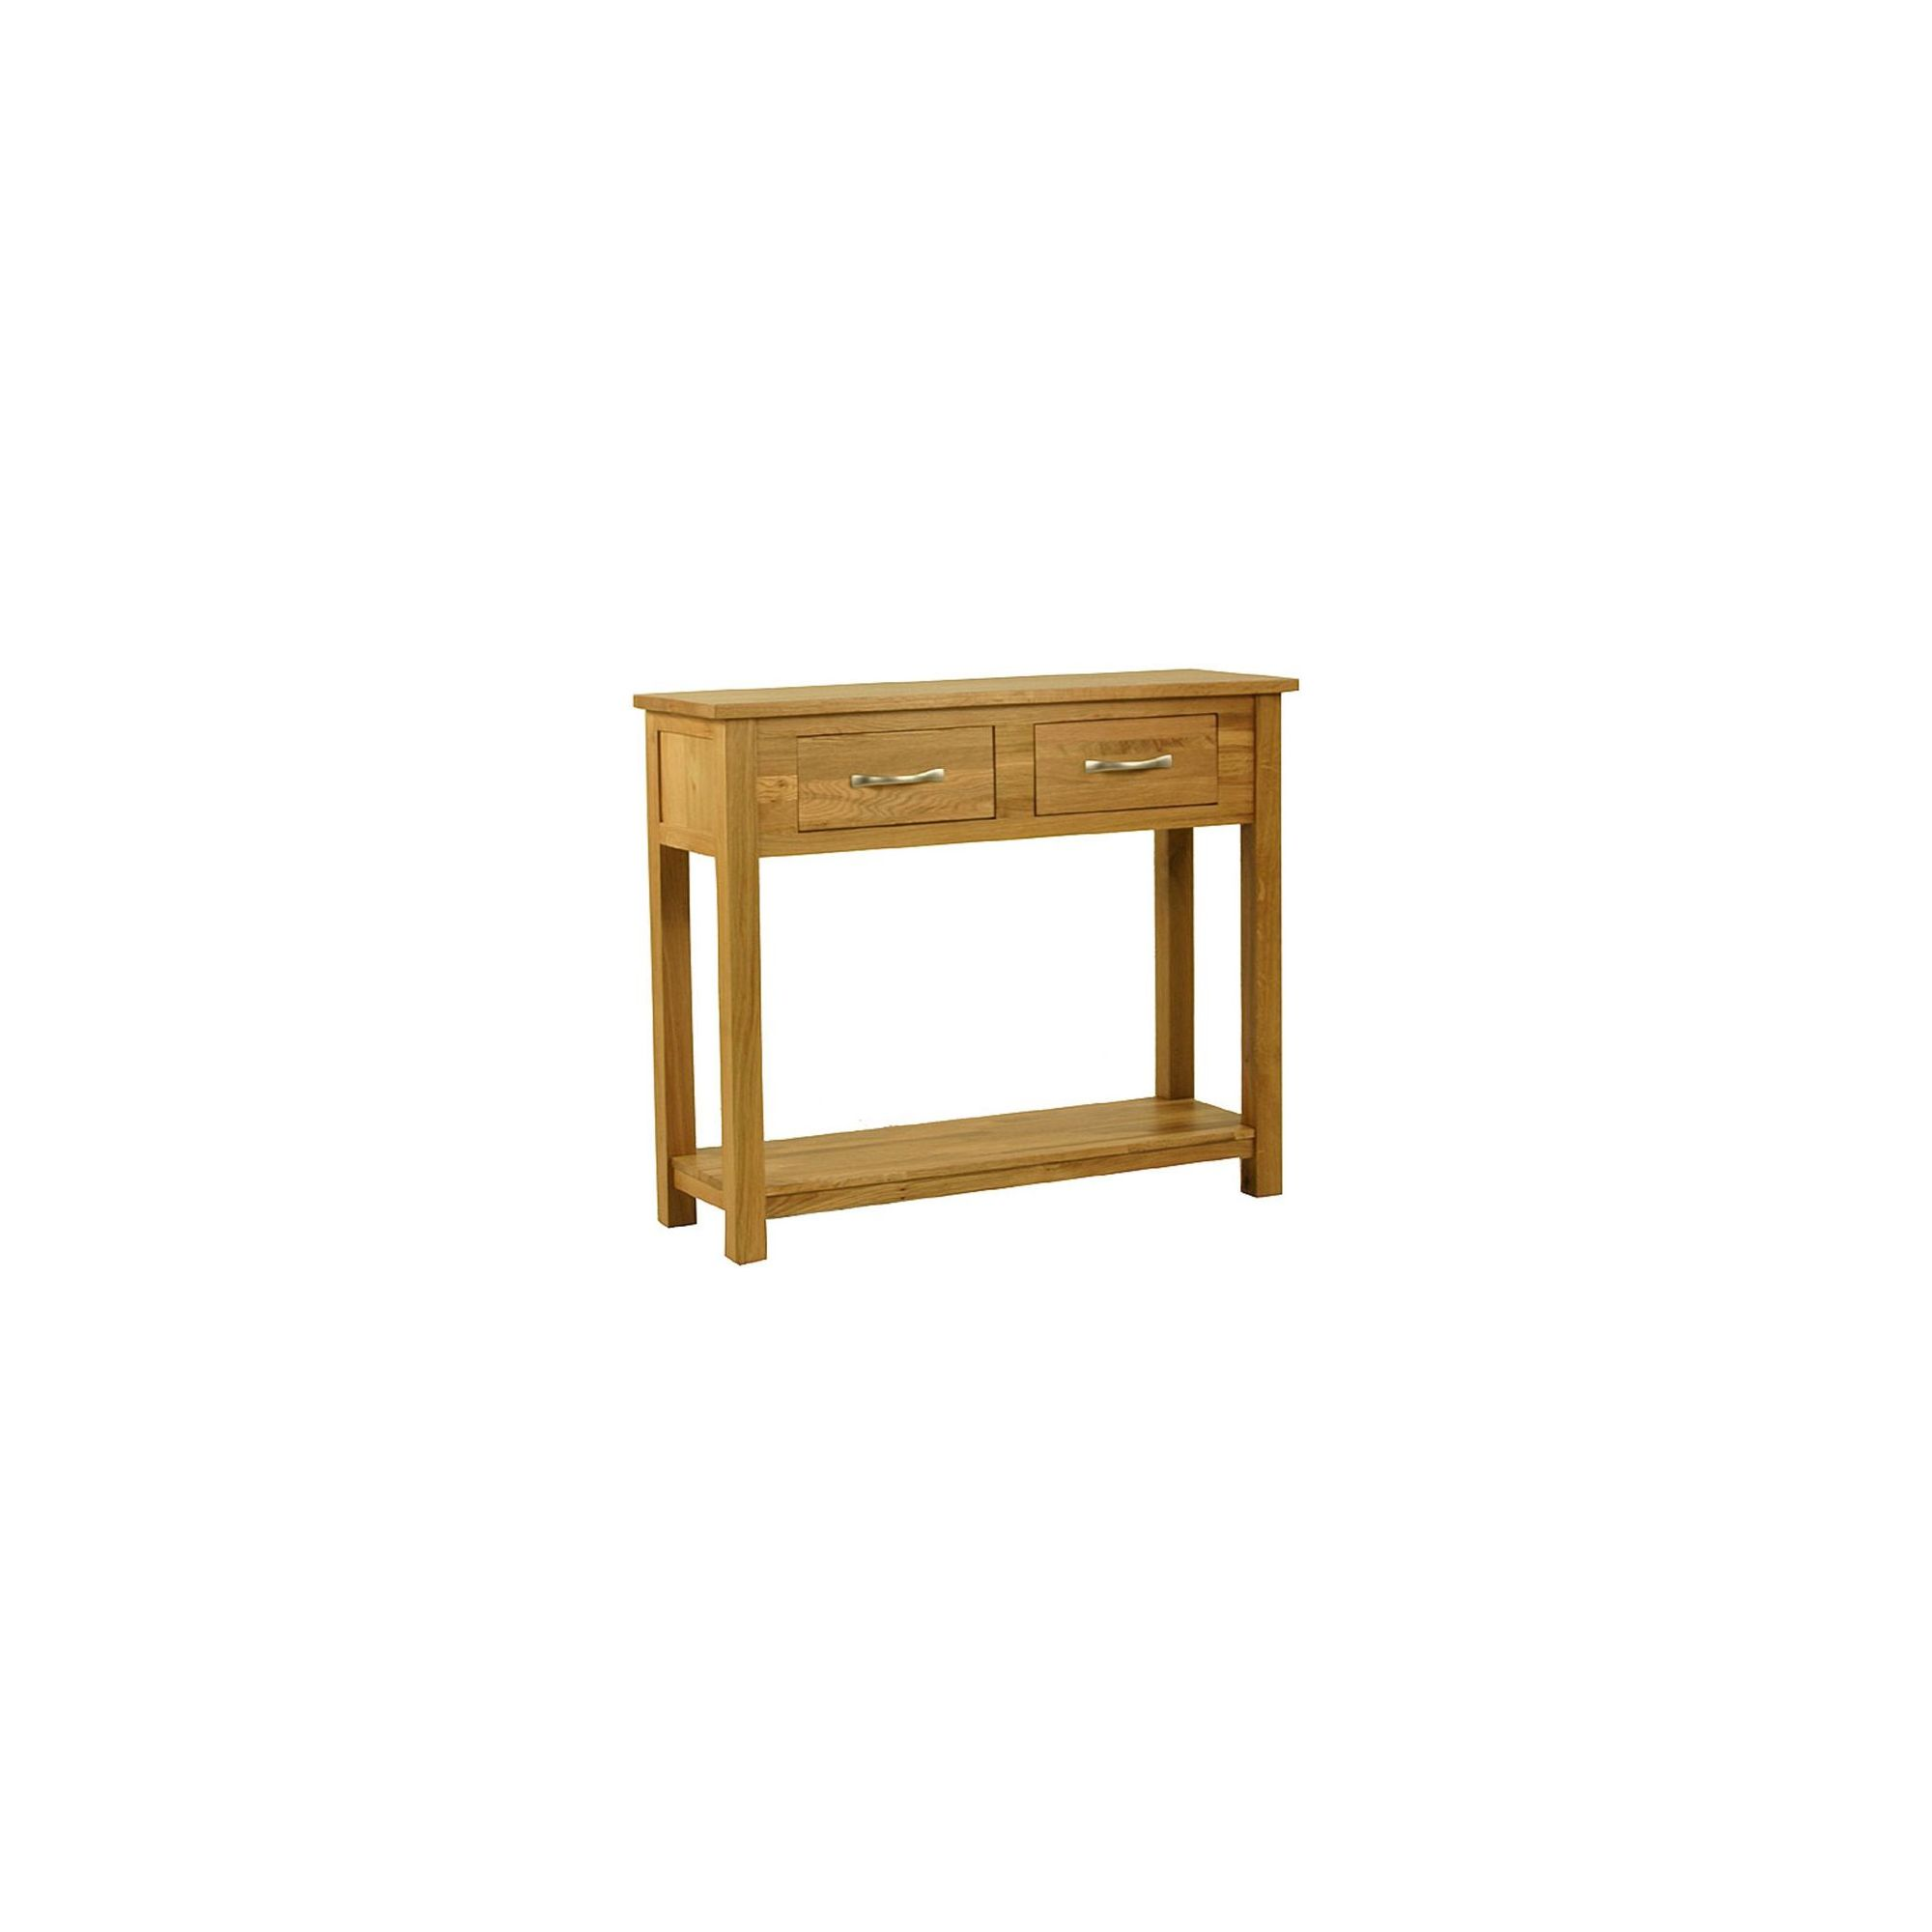 Kelburn Furniture Essentials Console Table in Light Oak Stain and Satin Lacquer